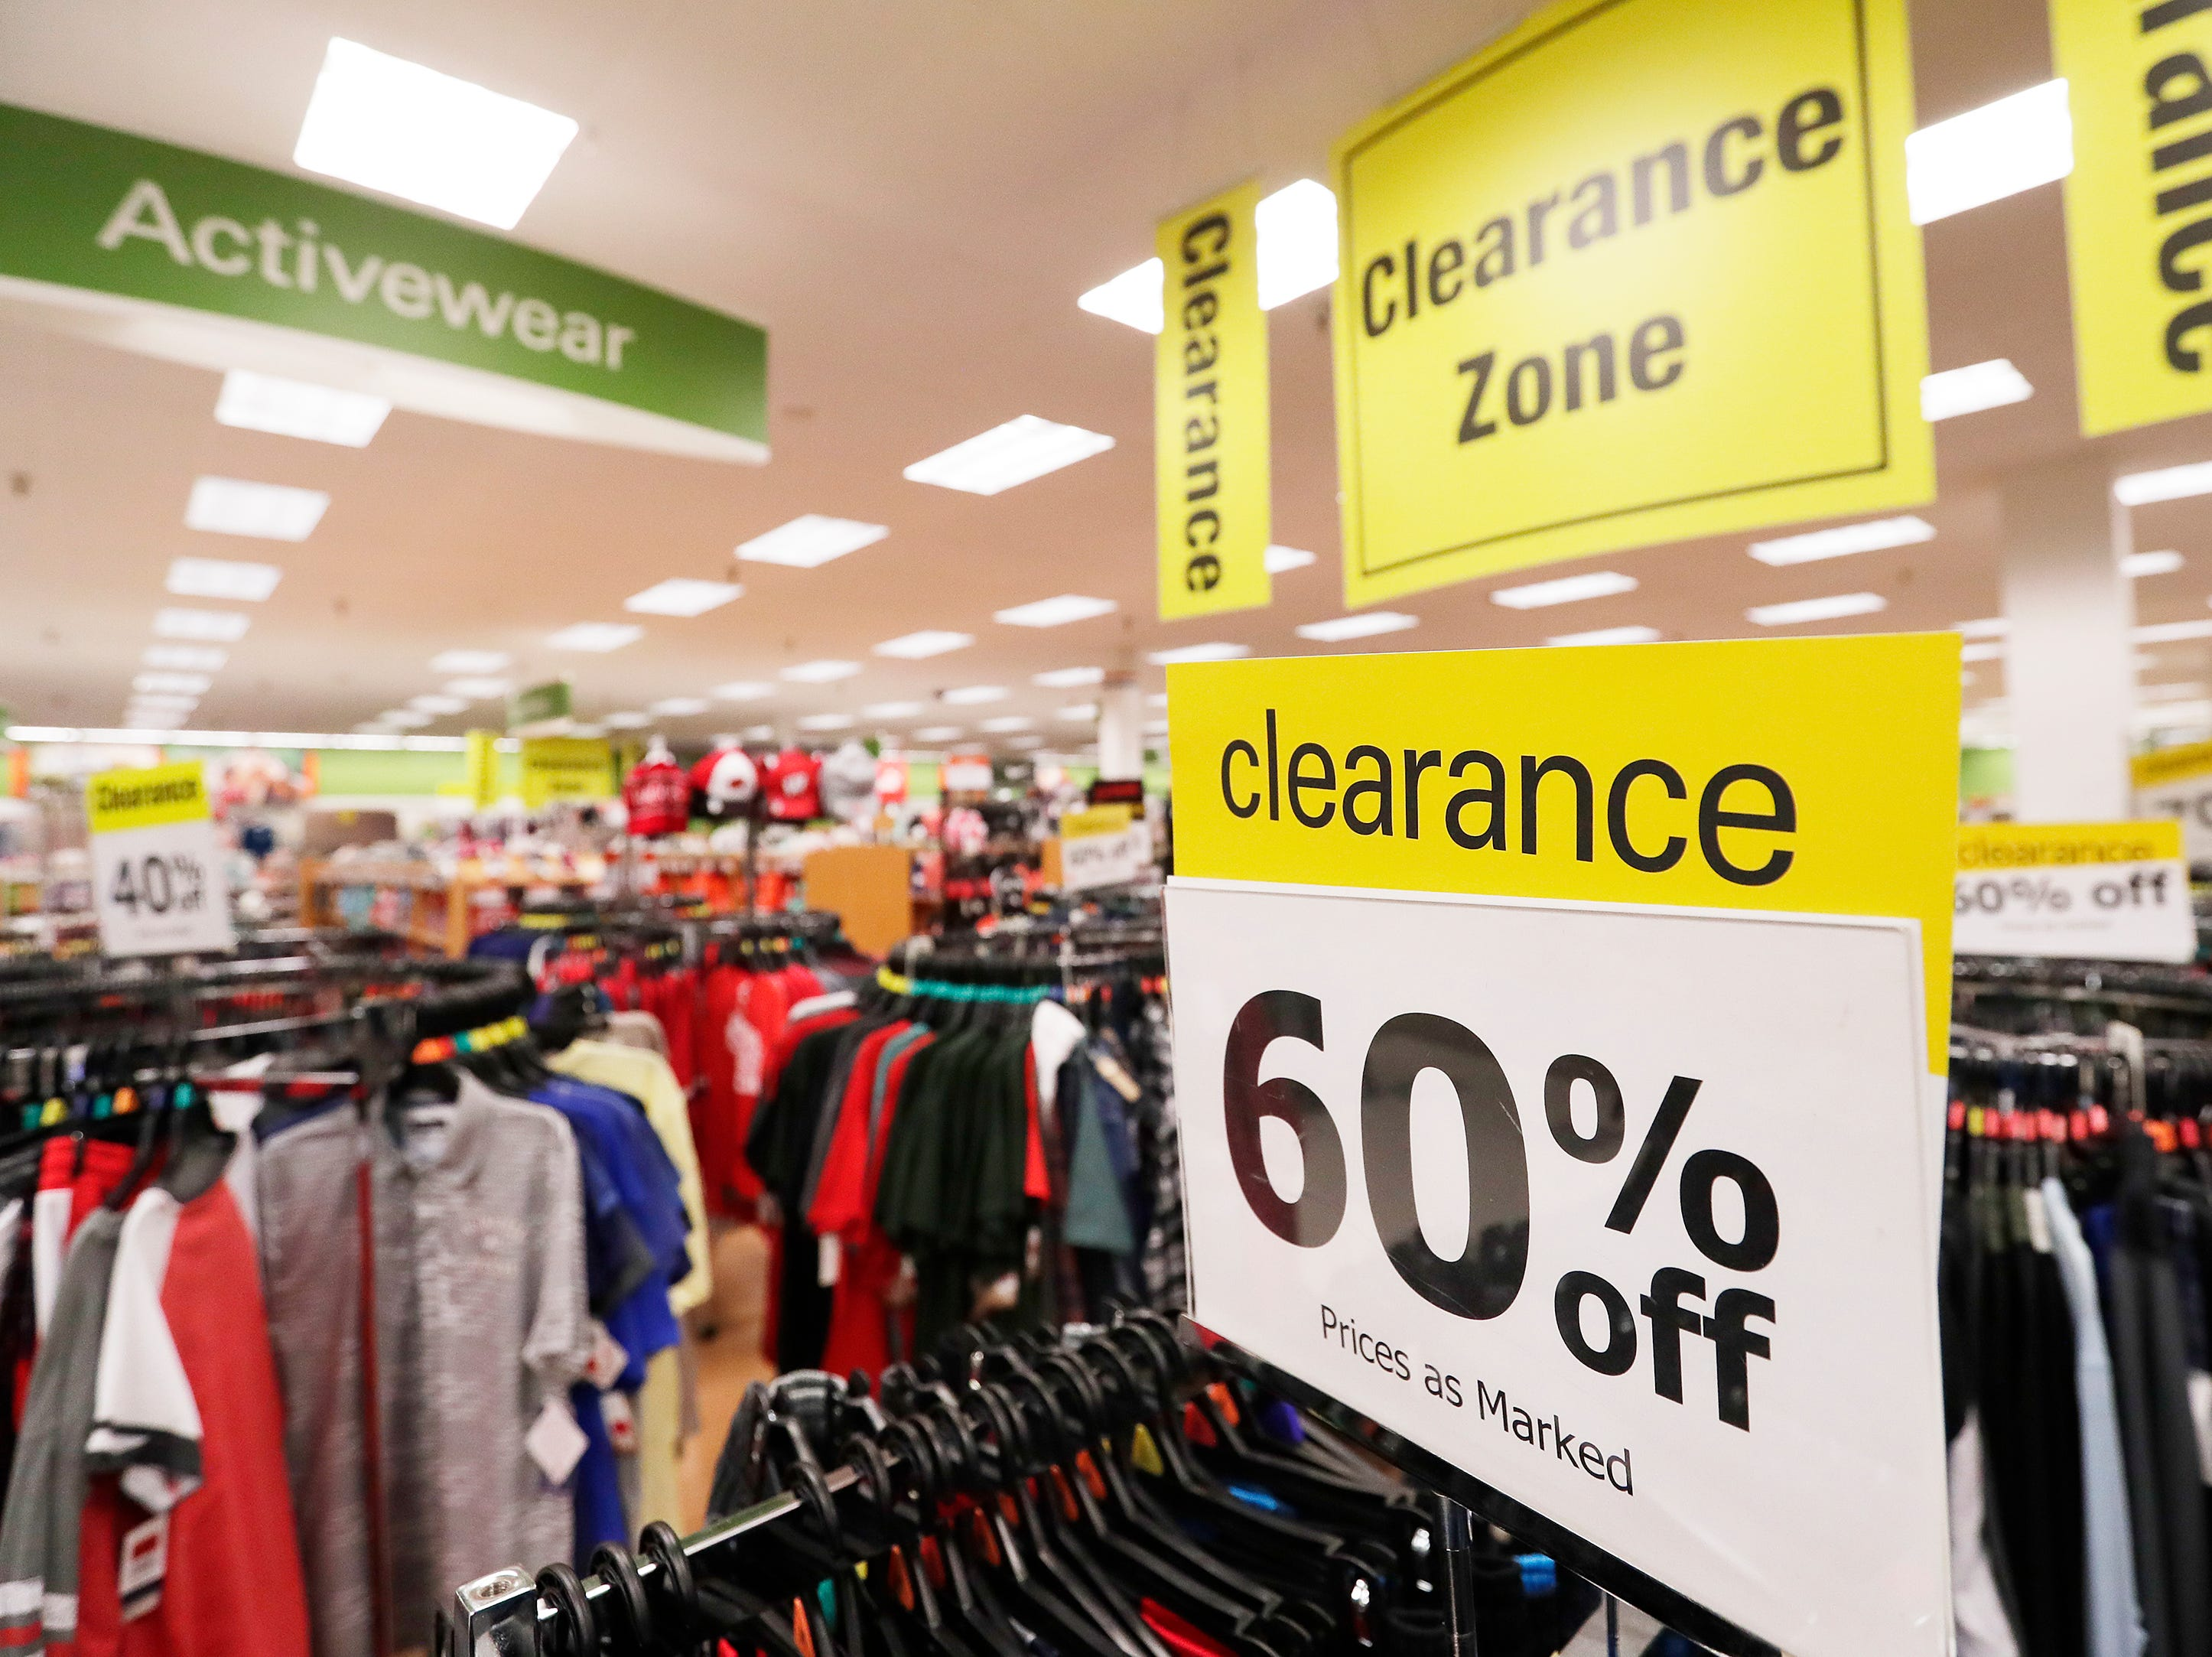 Sale signs are shown at the original Shopko store on Wednesday, January 16, 2019 in Green Bay, Wis. Shopko filed for chapter 11 bankruptcy on Wednesday and announced it will close 105 stores, including the company's original store on Military Ave in Green Bay.